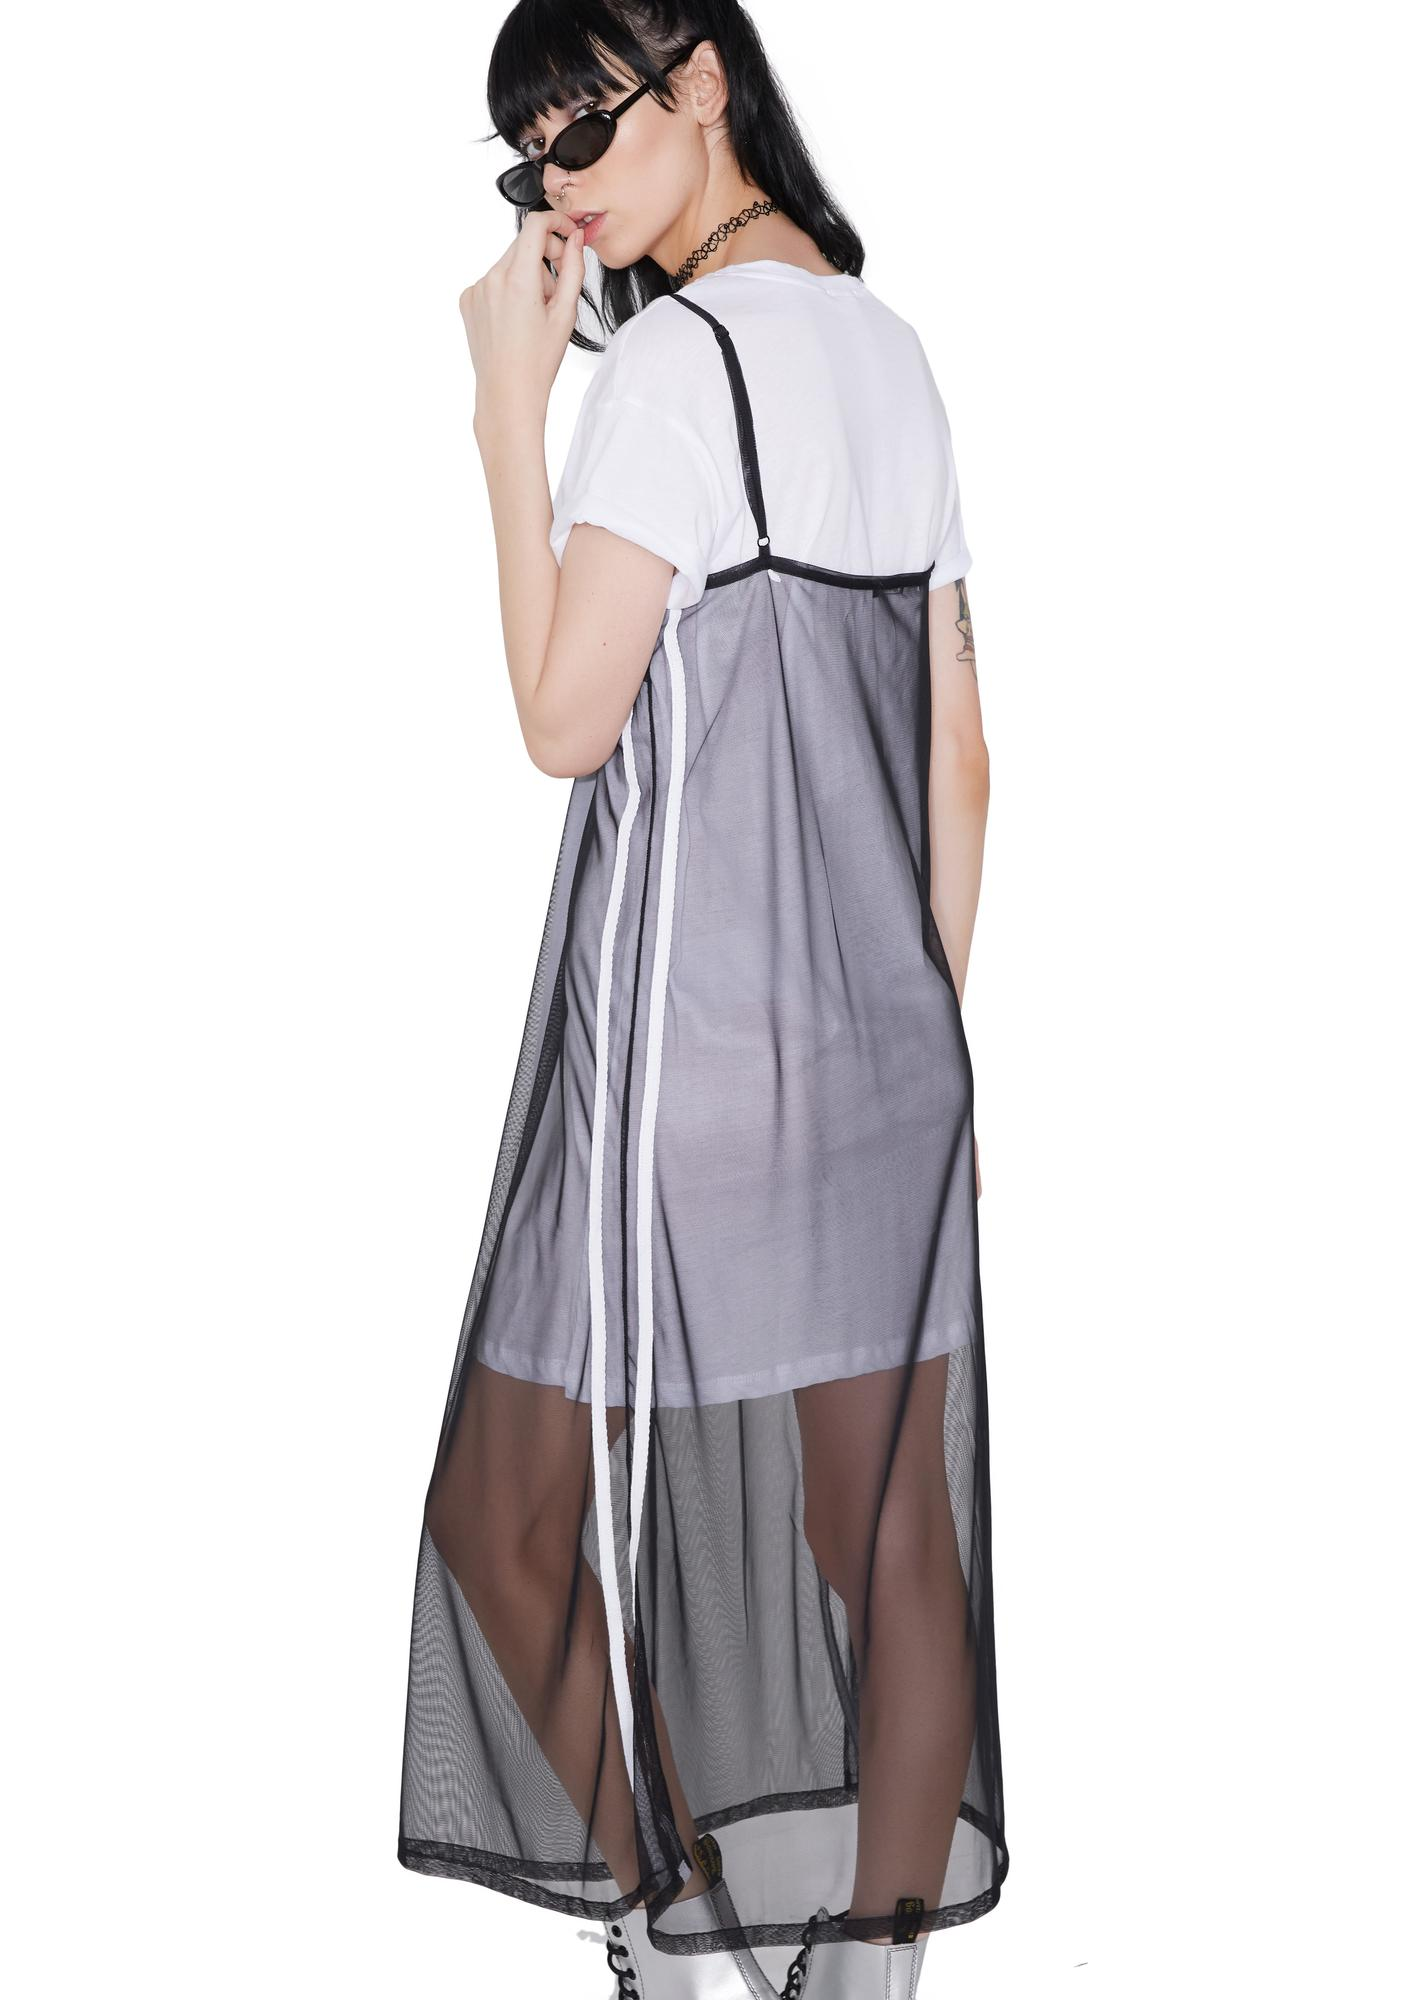 Game Face Sheer Layered Dress